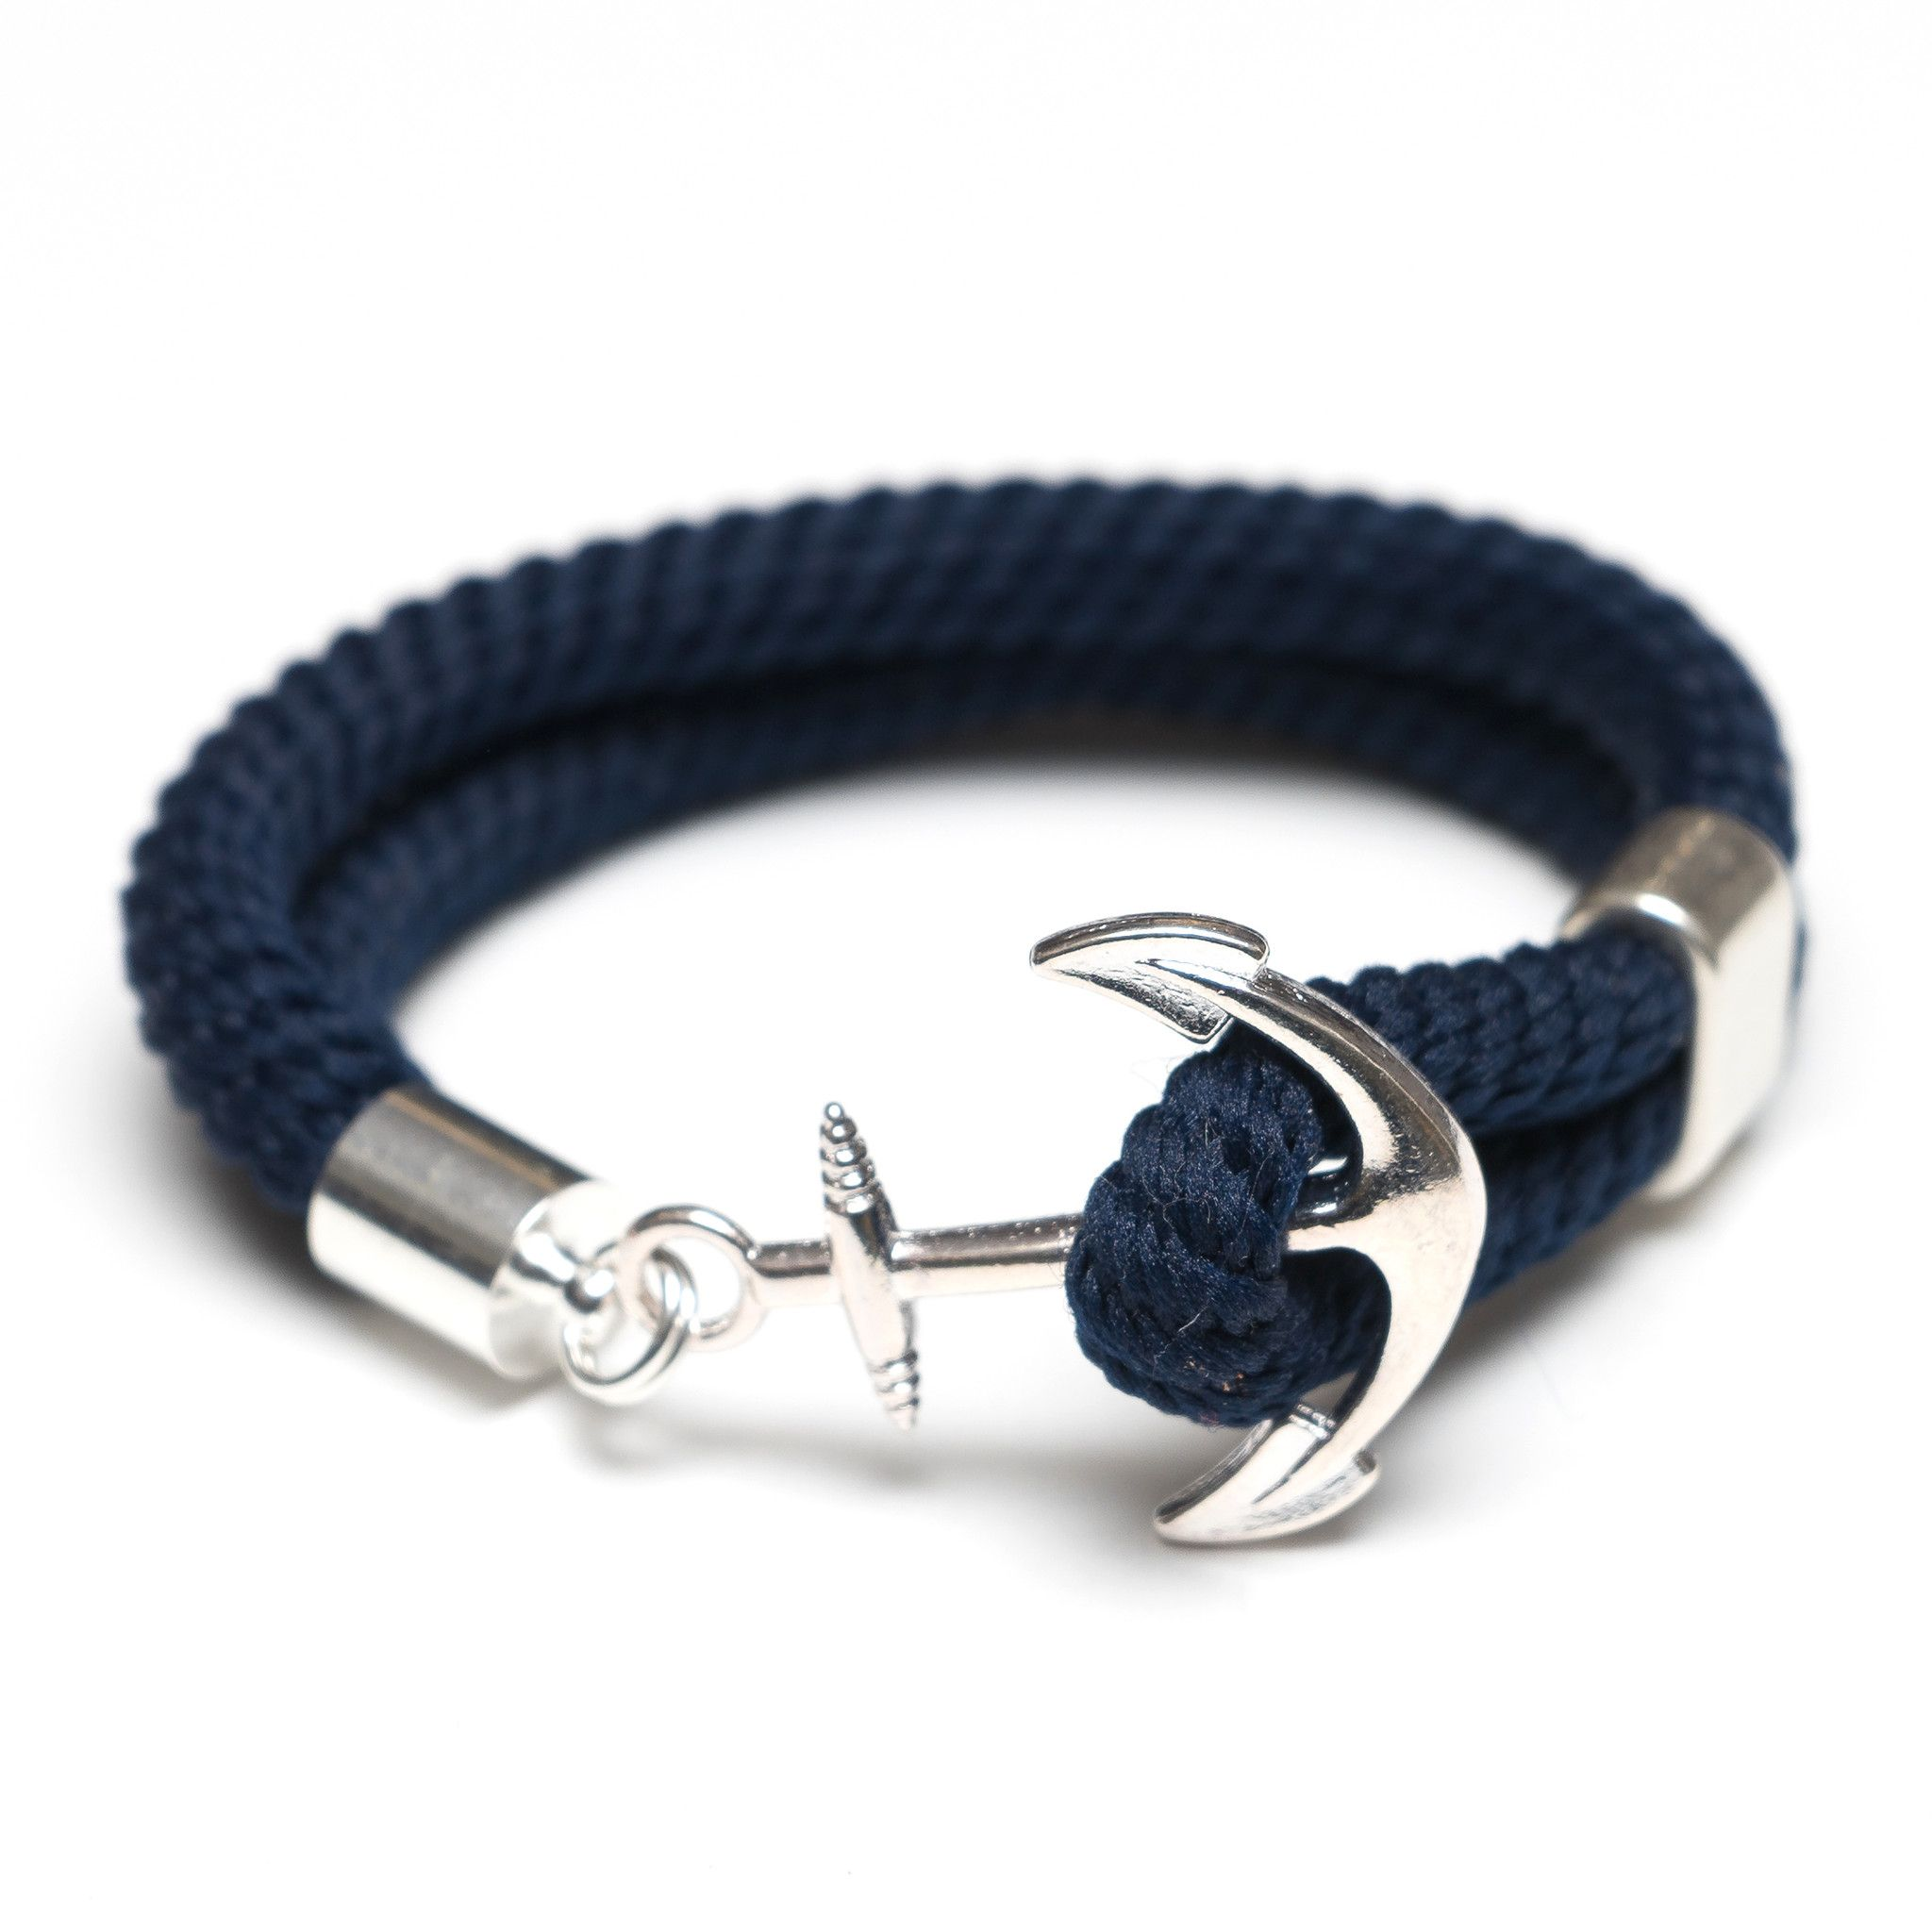 fancy knot jewellery sailor rope ksvhs men cord red s bracelet nautical surfer sailors bracelets